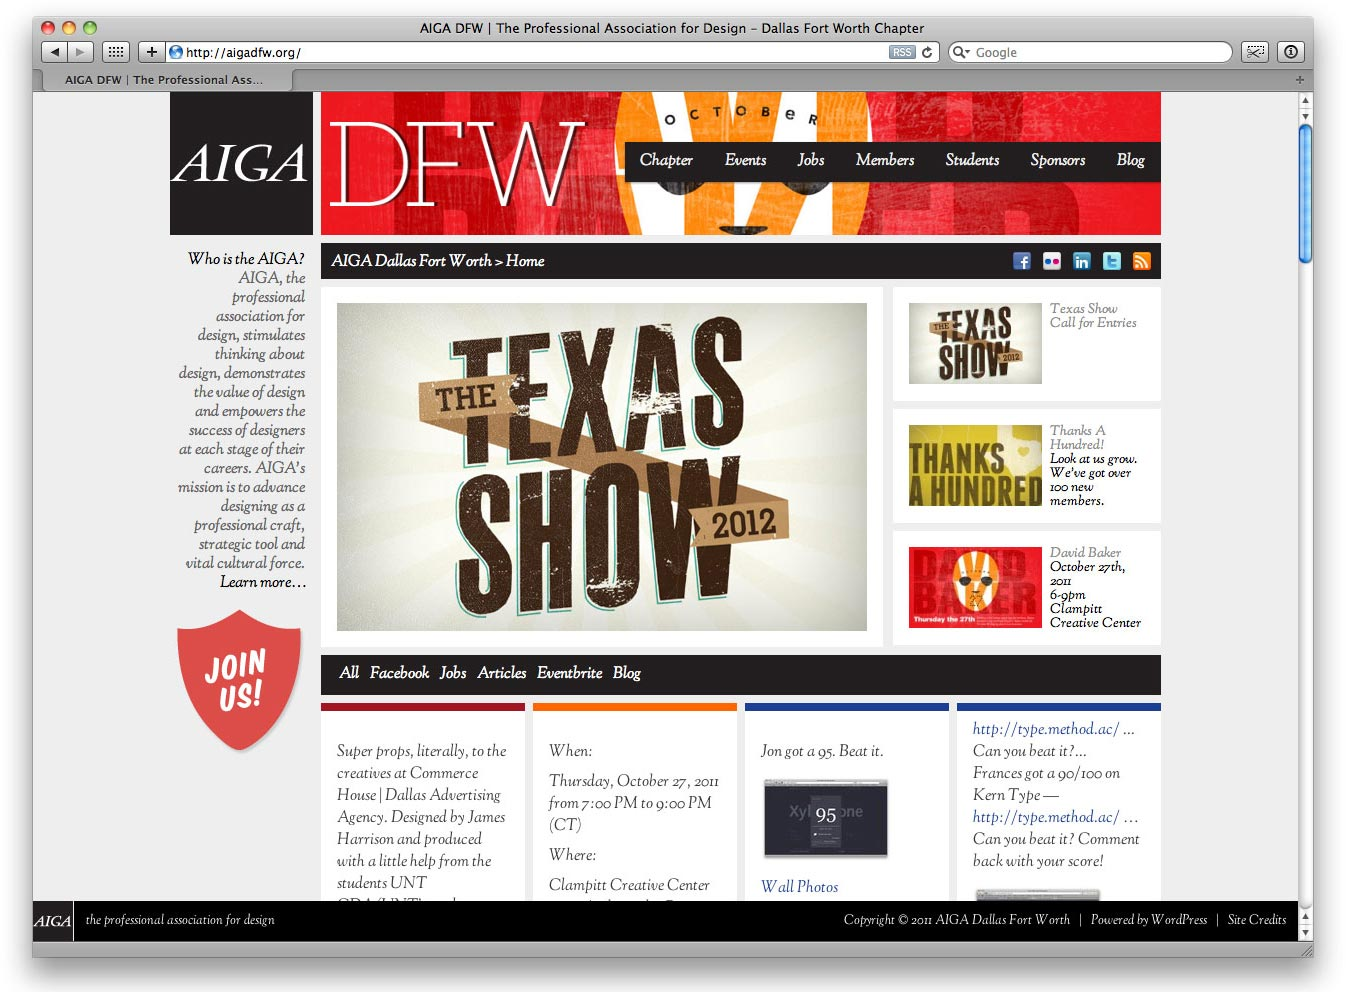 Website design and developement for AIGA DFW. Art Direction, Design, HTML/CSS Development, Wordpress implementation